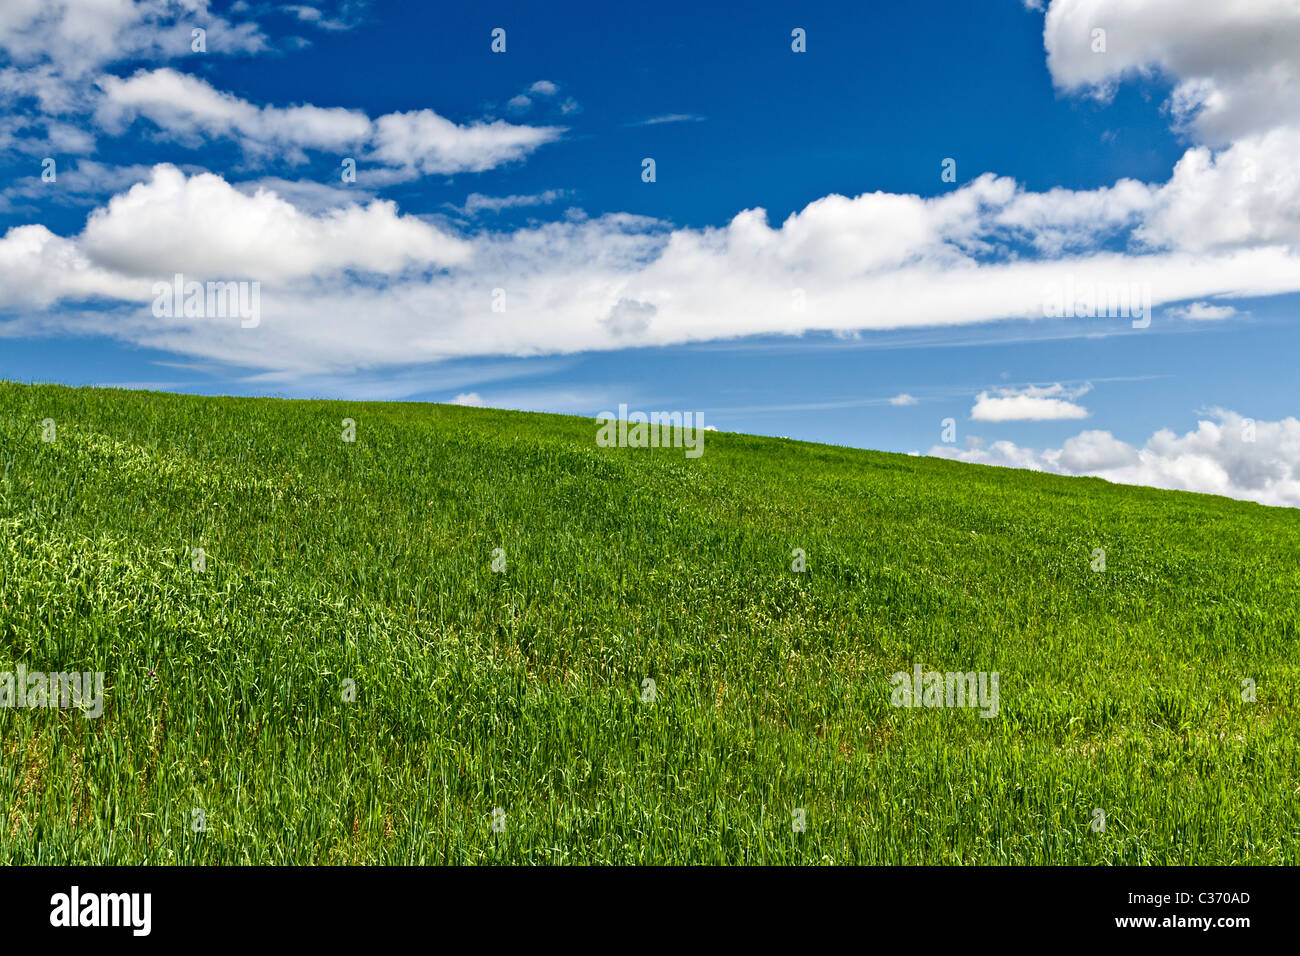 Green field with blue sky and clouds in the background - Stock Image